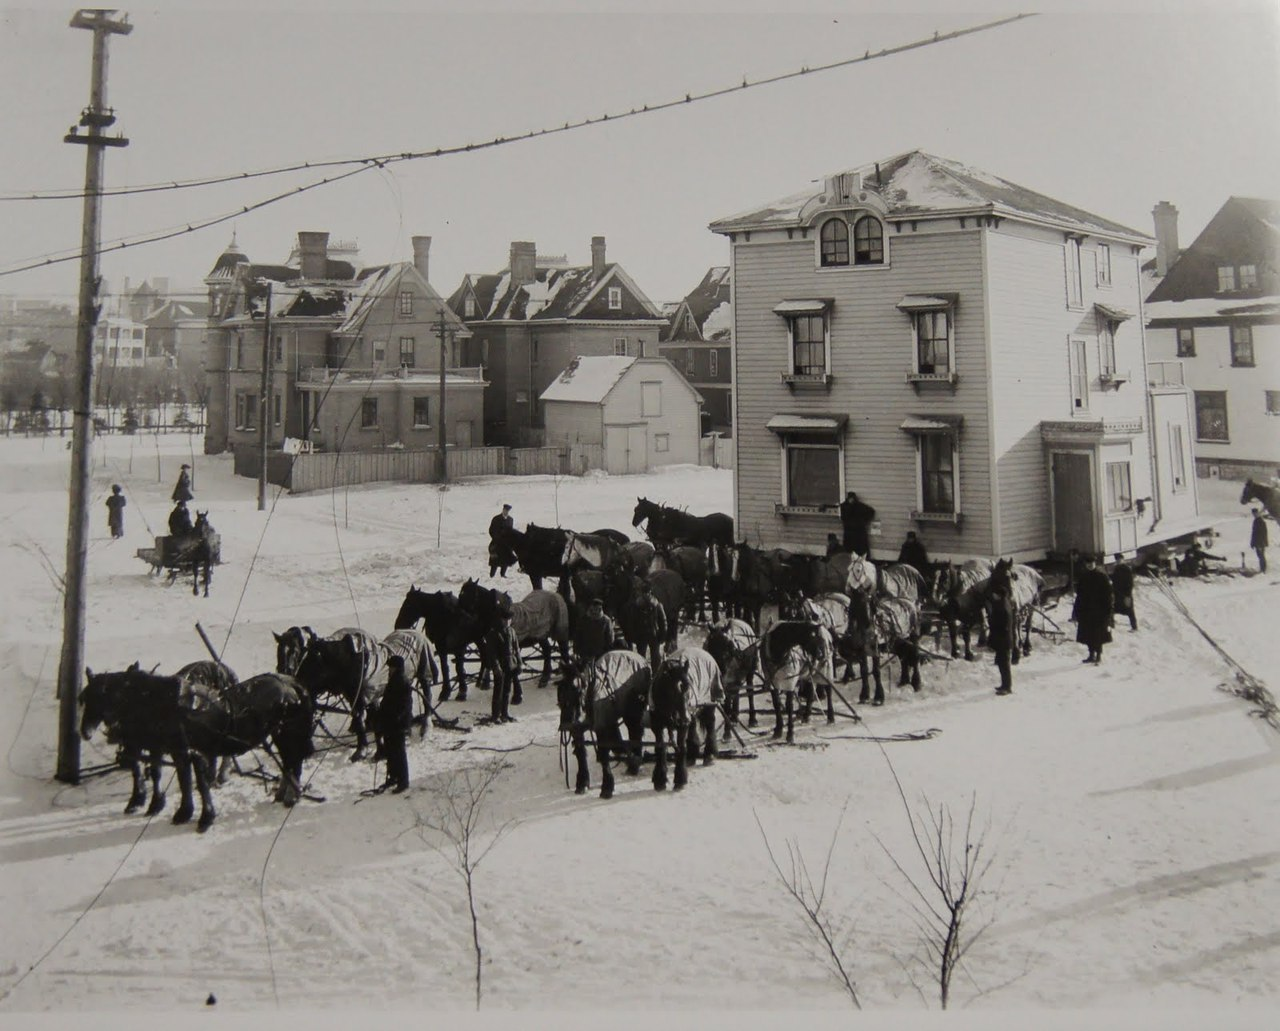 Lewis Benjamin Foote, Moving a House with Horses, c 1915  Even earlier Winnipeg. Community building exercise!